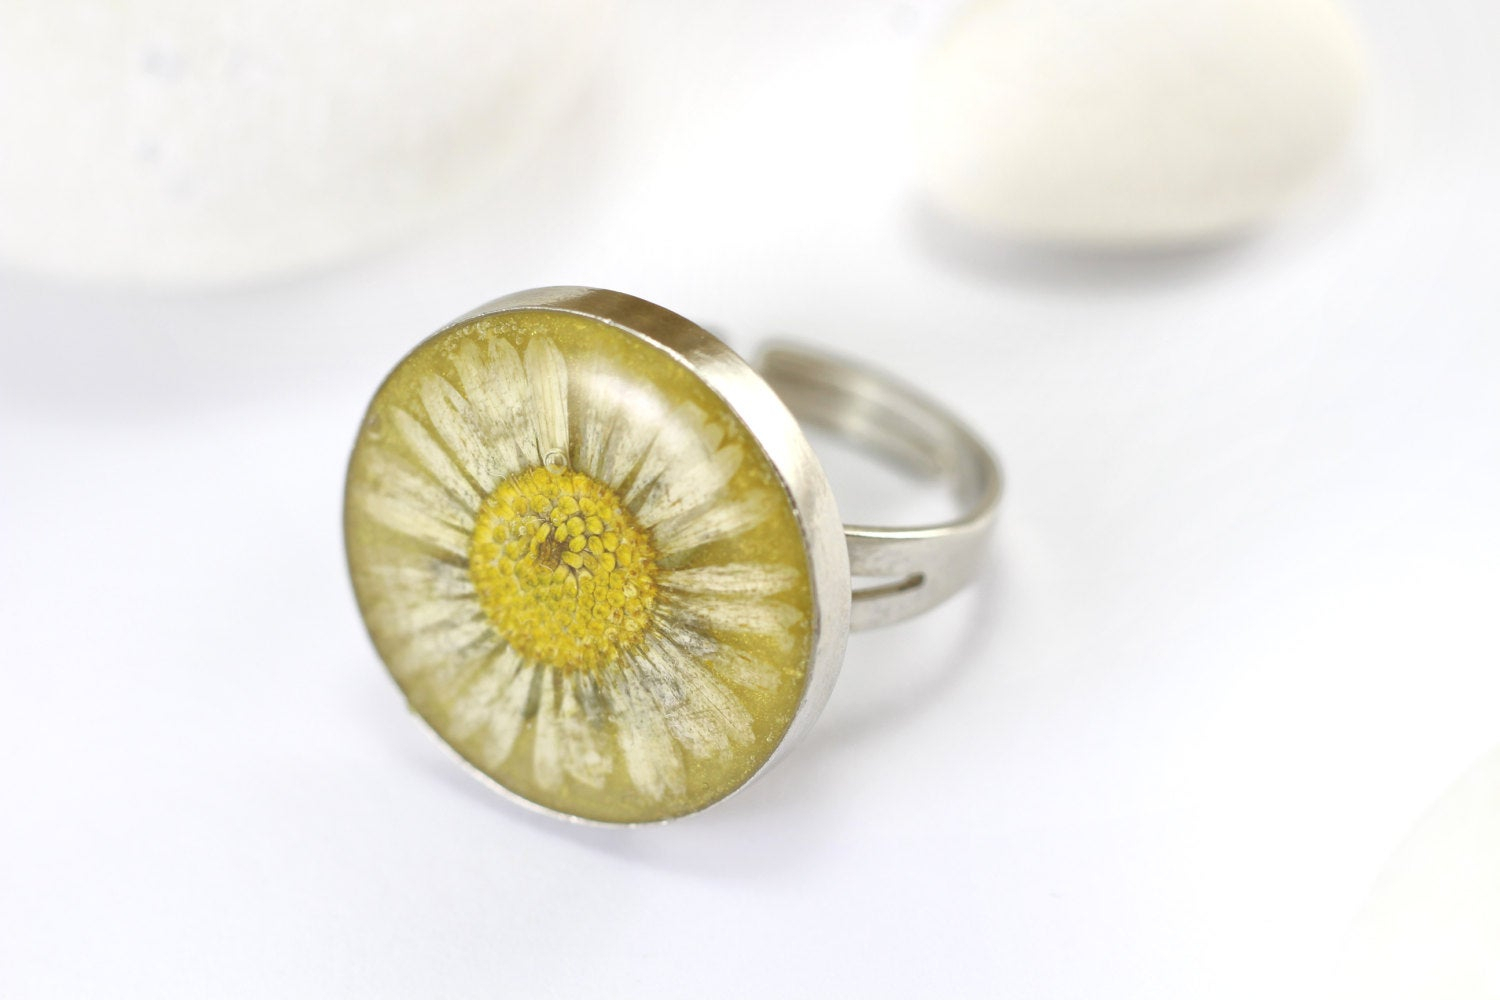 Daisy Flower Ring Real Flower Ring Pressed Flower Floral Ring White Daisy Gift For Girlfriend Girlfriend Ring Anniversary Ring Ring Women With Current Daisy Flower Rings (View 13 of 25)